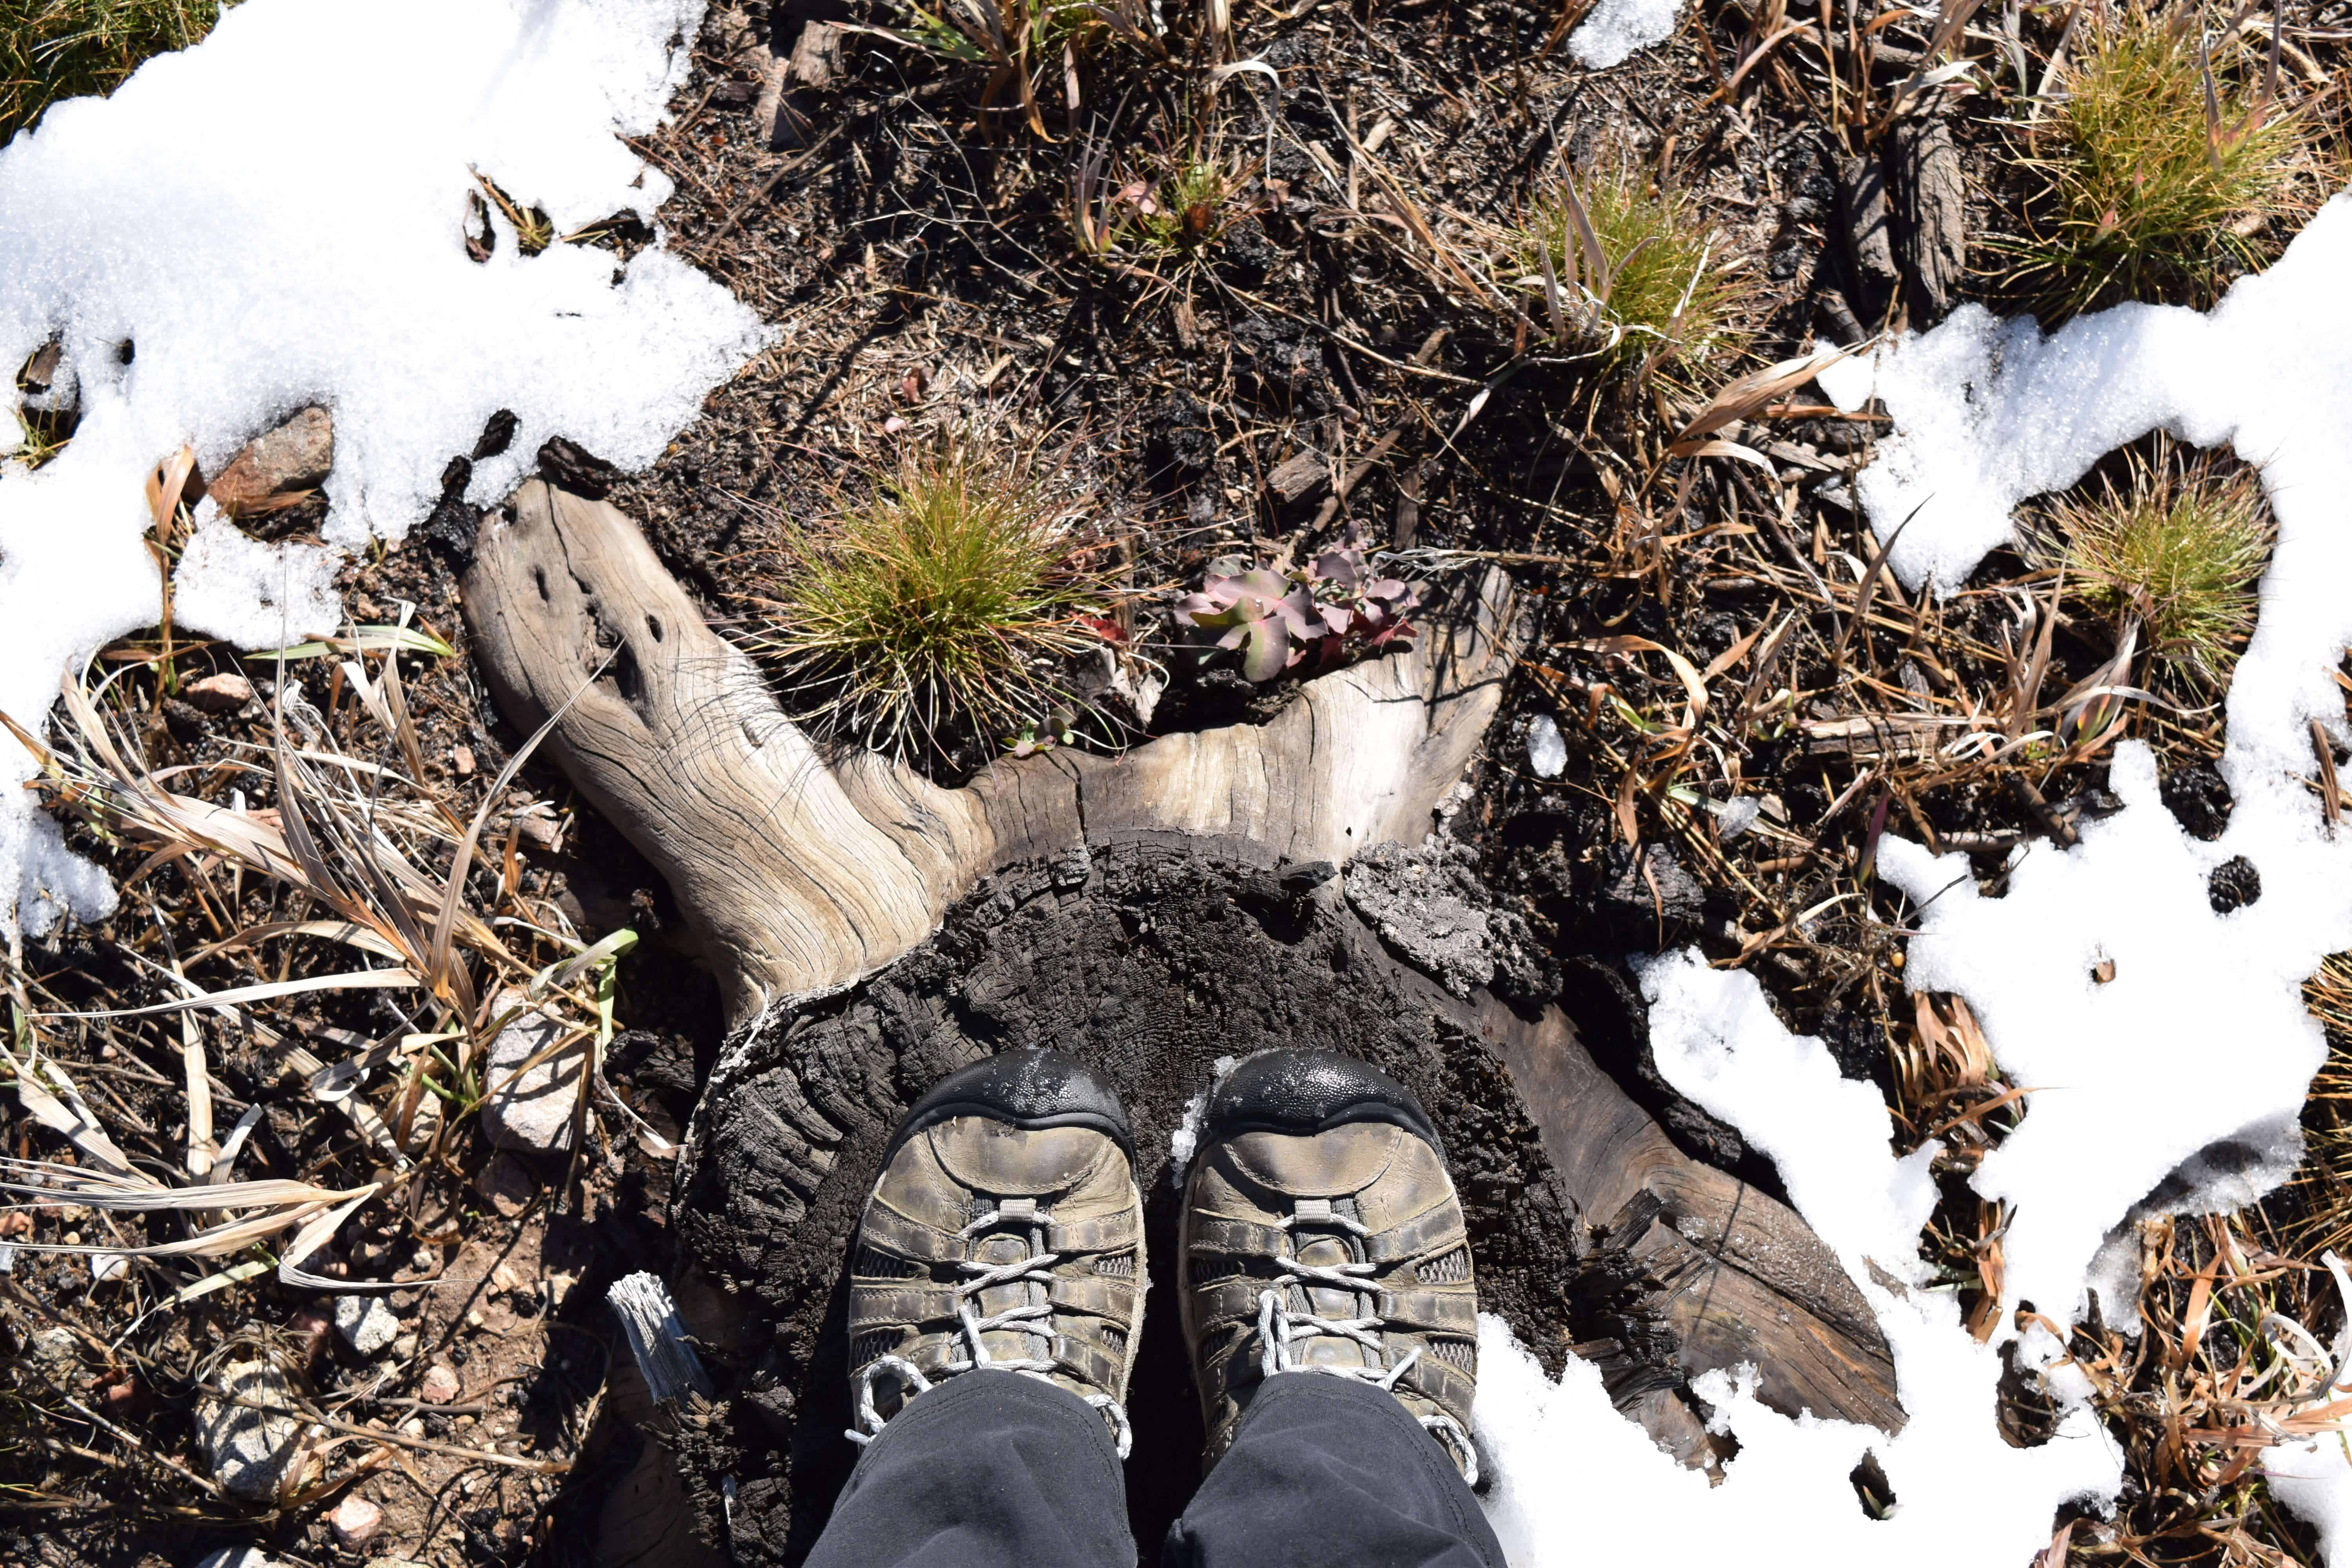 hiking boots on a stump